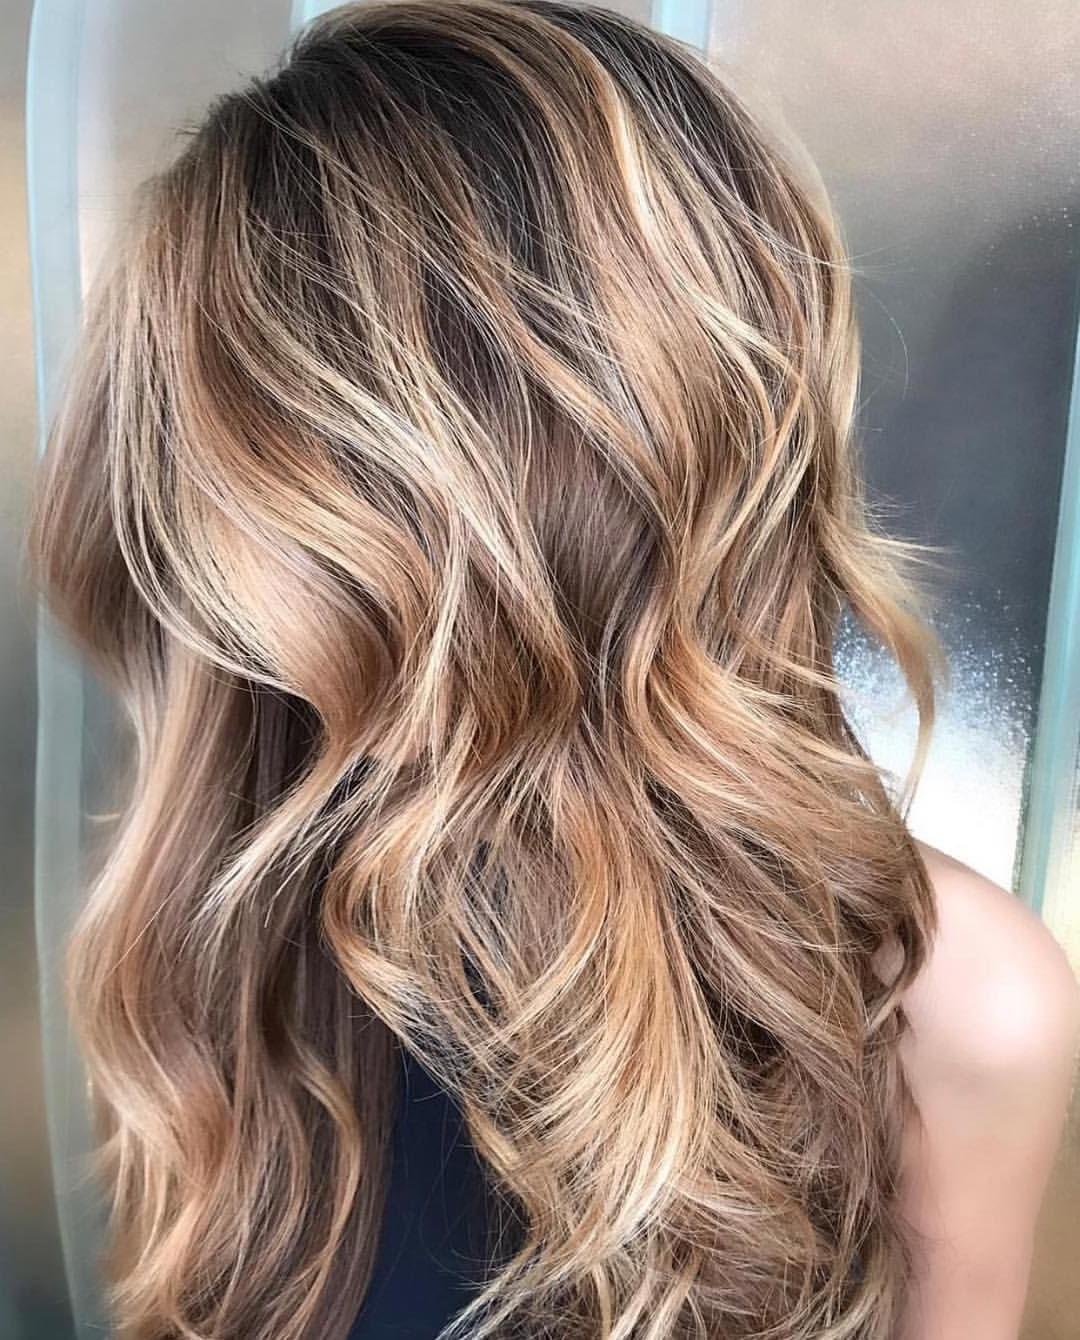 1,000 Likes, 7 Comments – Balayage ? Braids ? Blogger In Most Up To Date Brown Sugar Blonde Hairstyles (View 11 of 20)